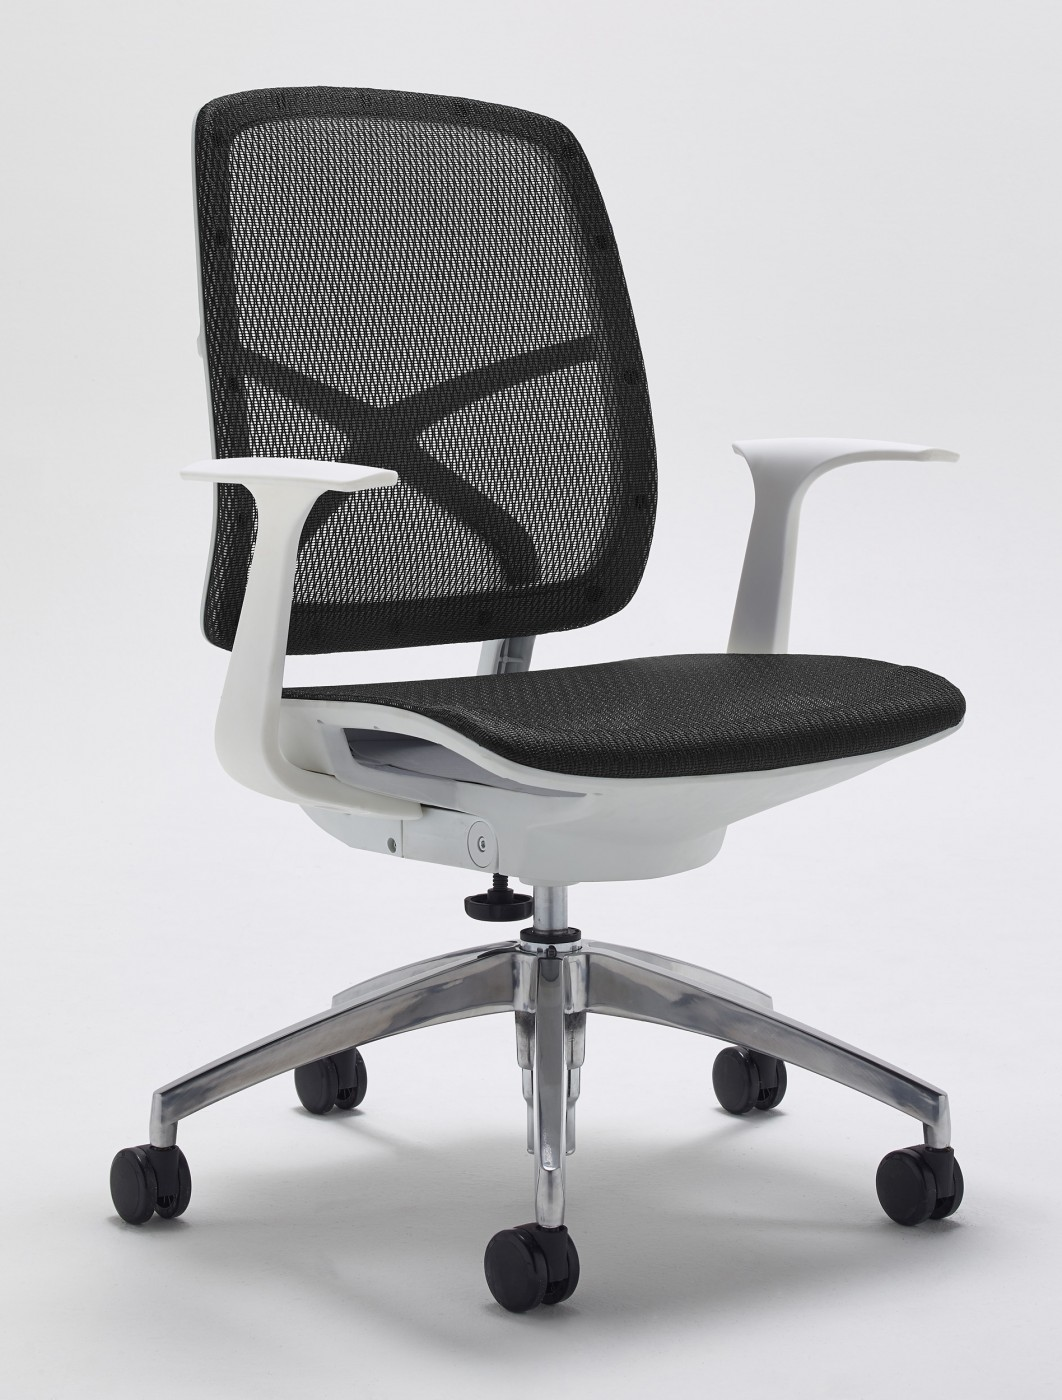 Office Chairs Zico Mesh Back Chair CH0799 ETC042   Enlarged View